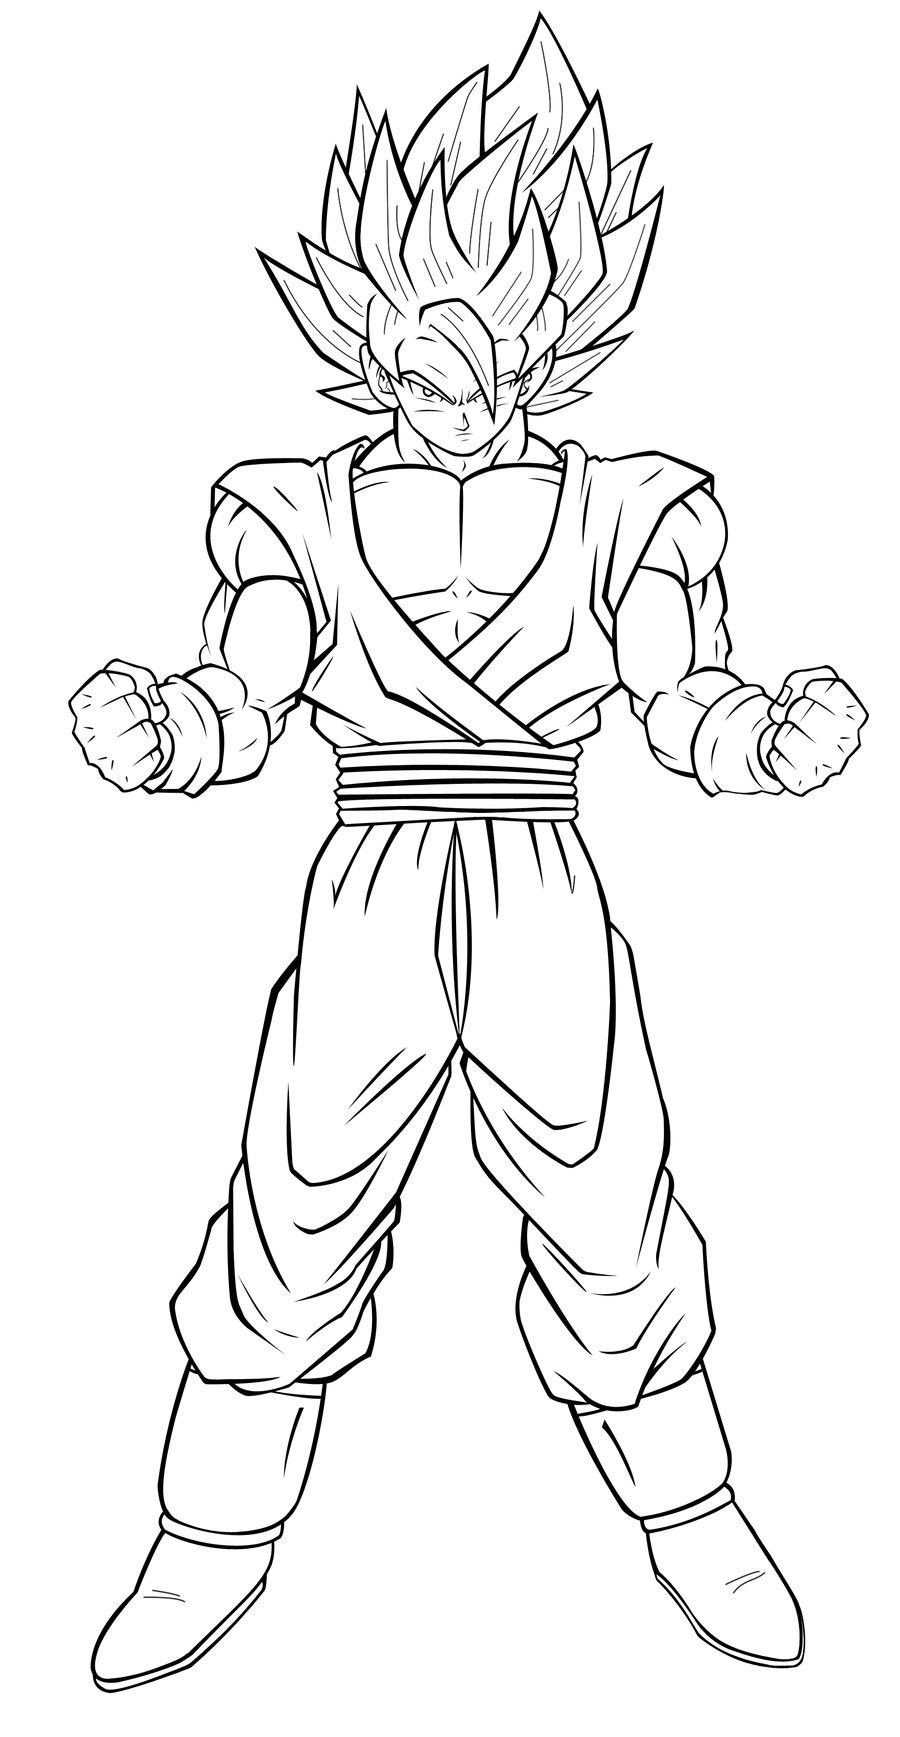 Goku Super Saiyan 1 Coloring Pages Download Dragon Coloring Page Dragon Ball Image Super Coloring Pages